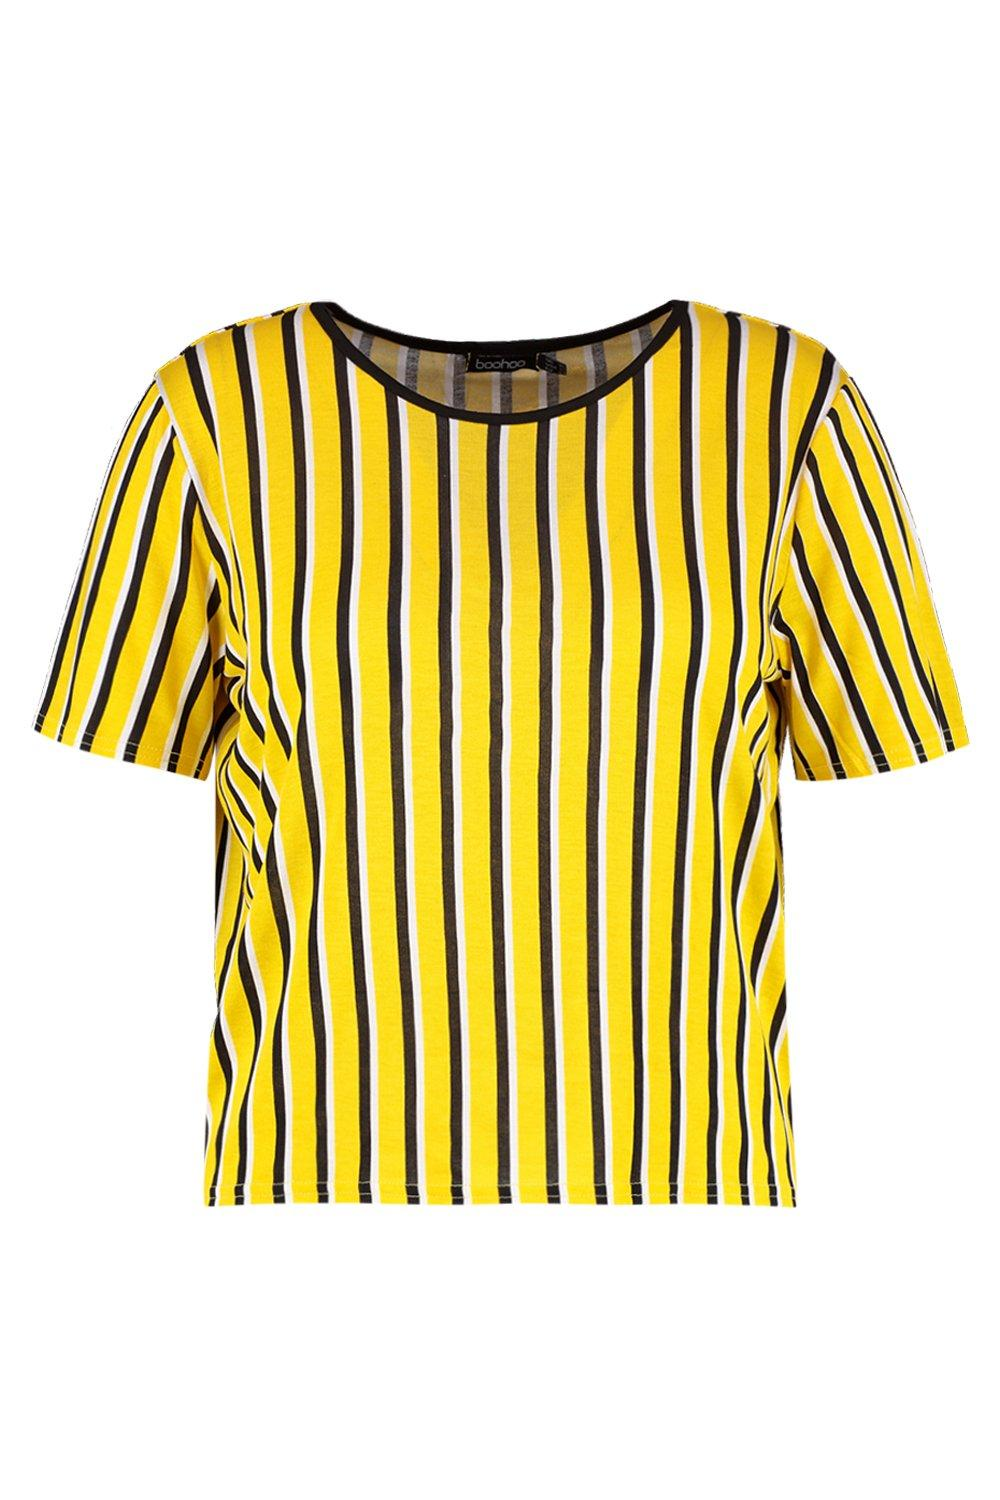 righe Plus a jersey shirt T in wxqqpvg0Y7